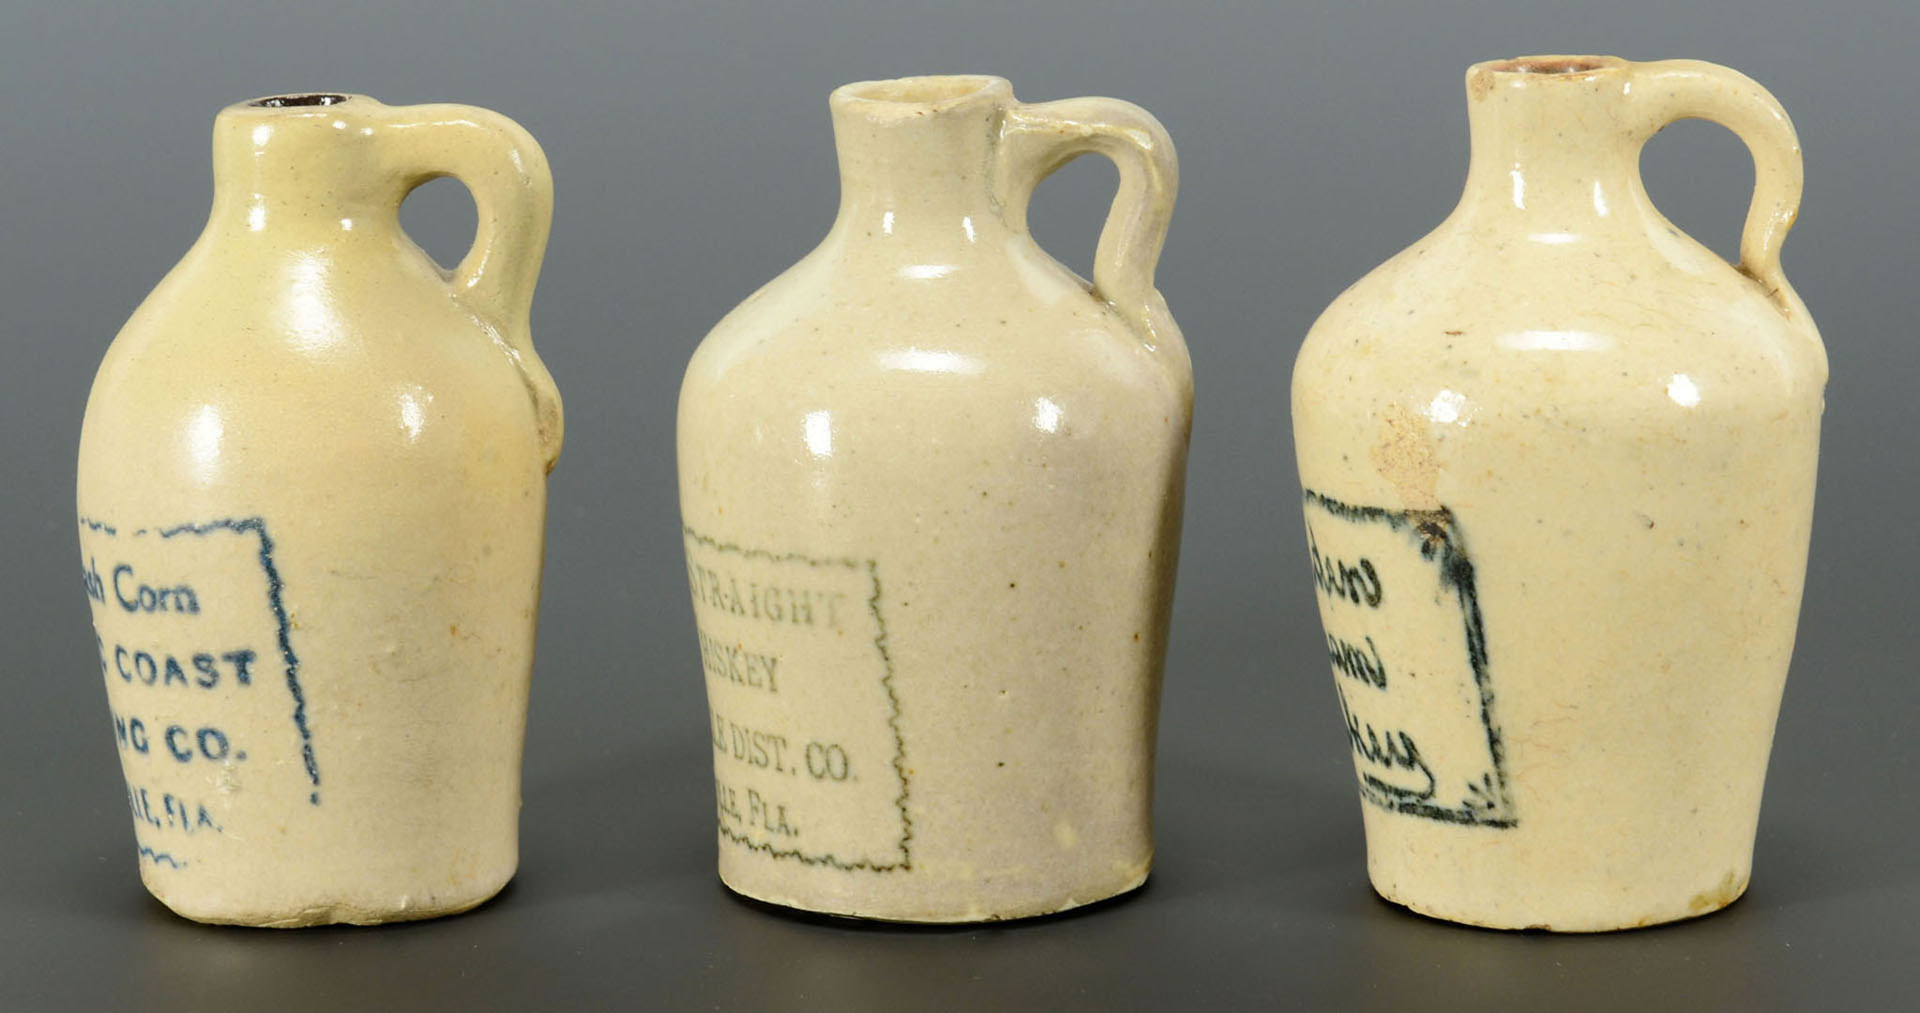 Lot 548: Florida and Alabama Miniature Whiskey Jugs, 3